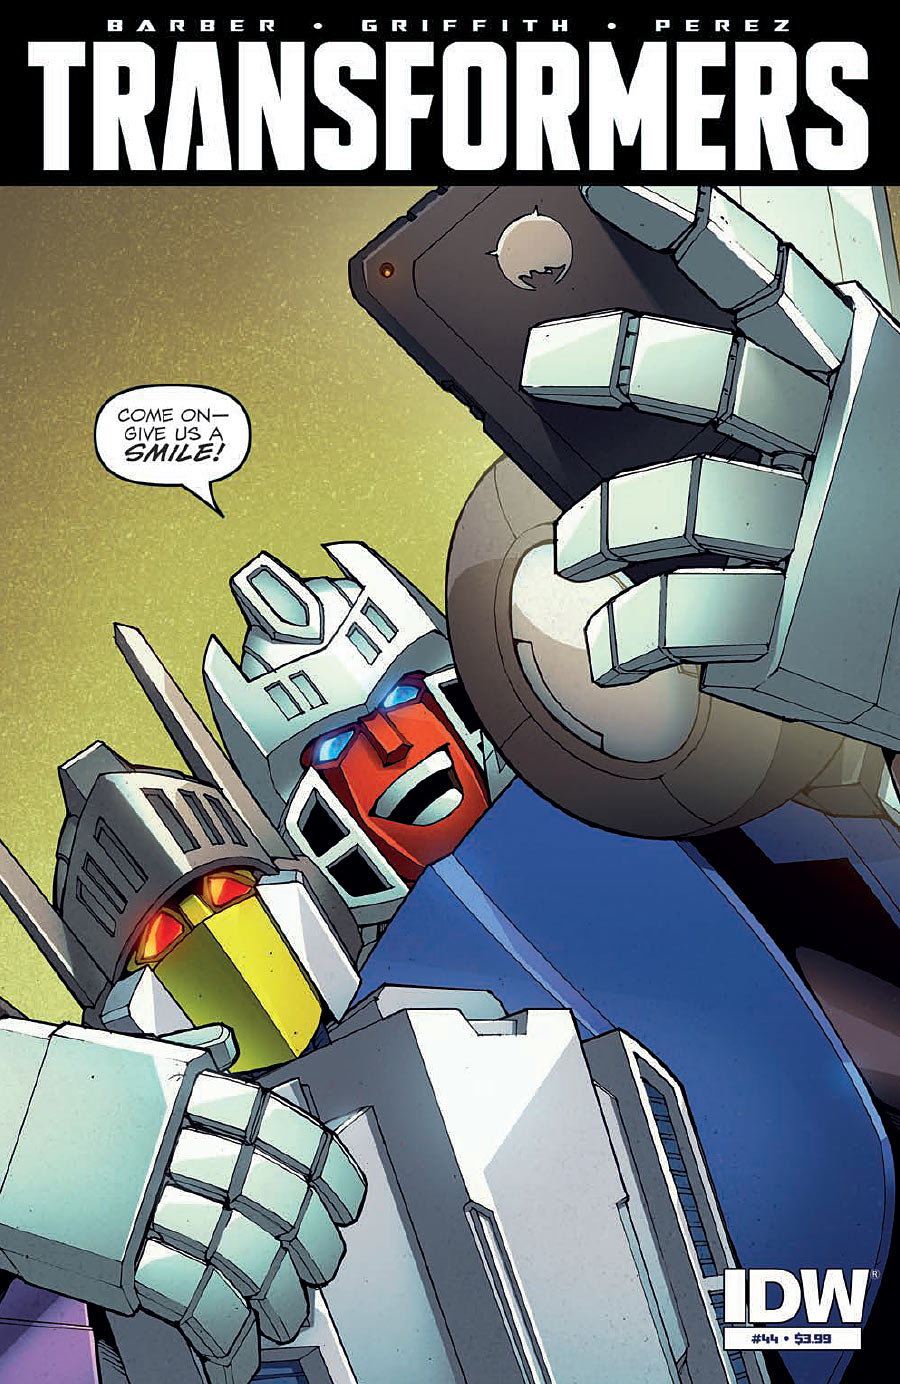 The Transformers #44